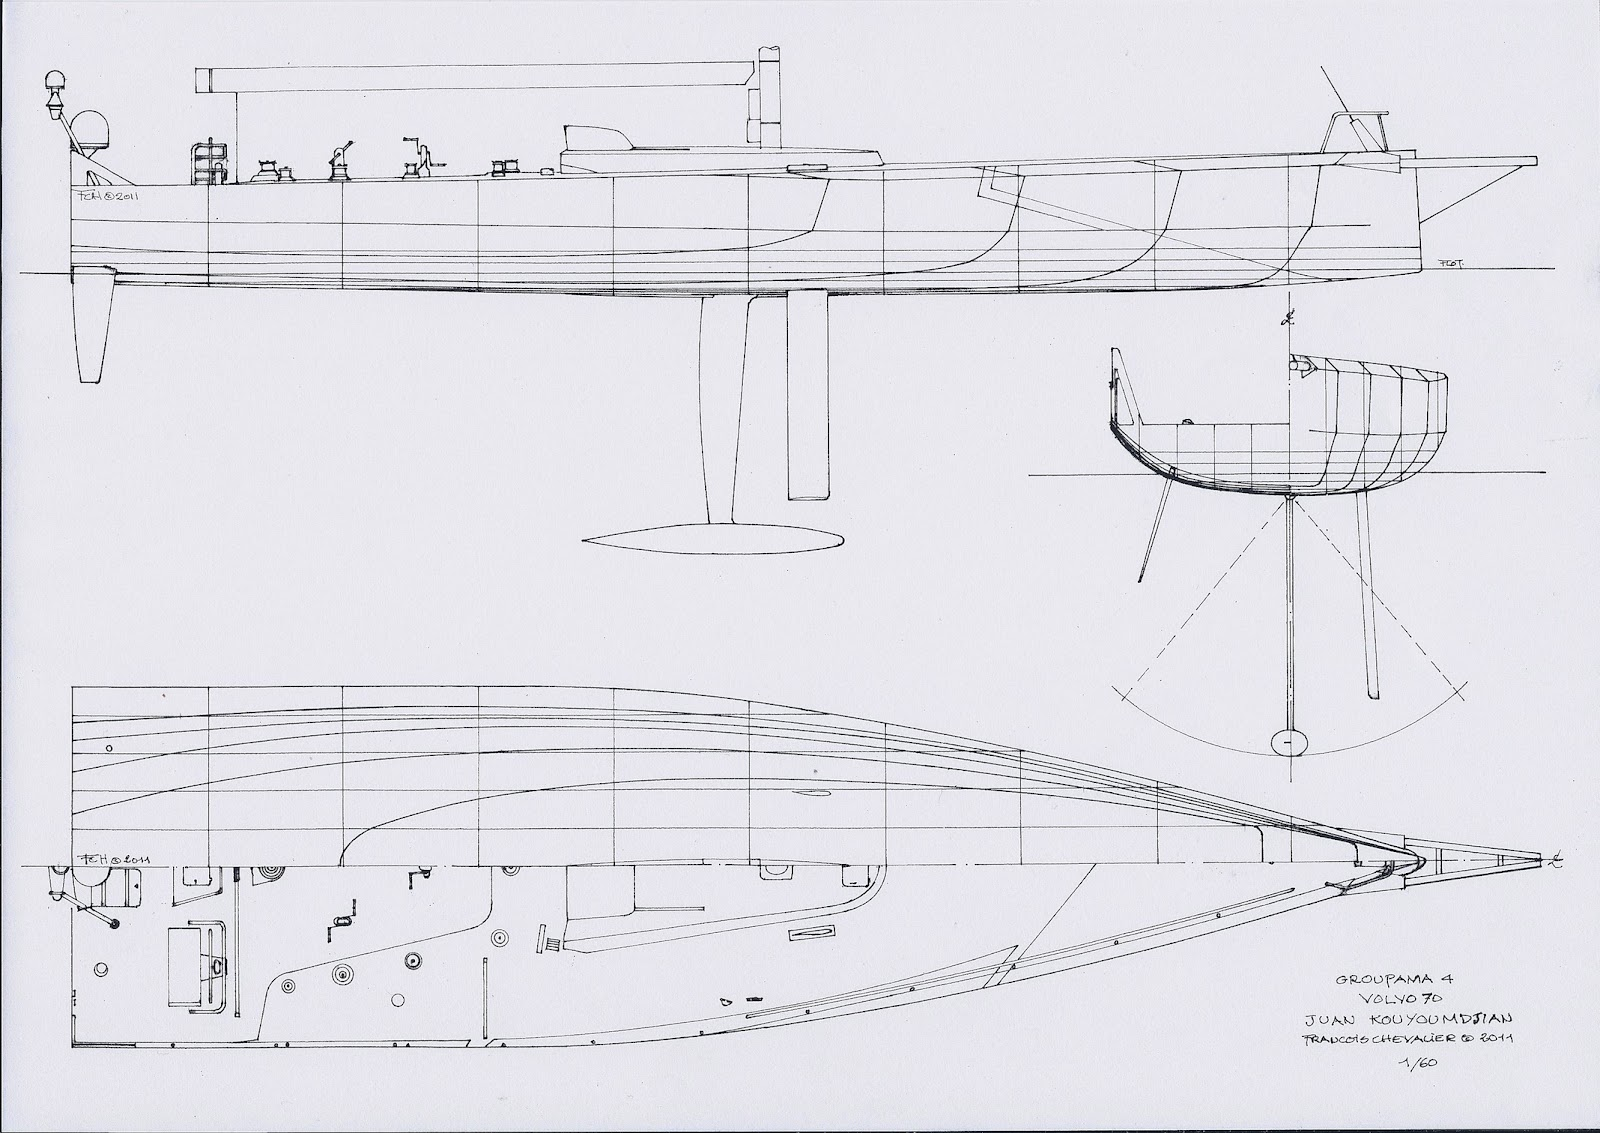 hight resolution of chevalier taglang volvo ocean race drawings and design evolution updated 2014 volvo one design